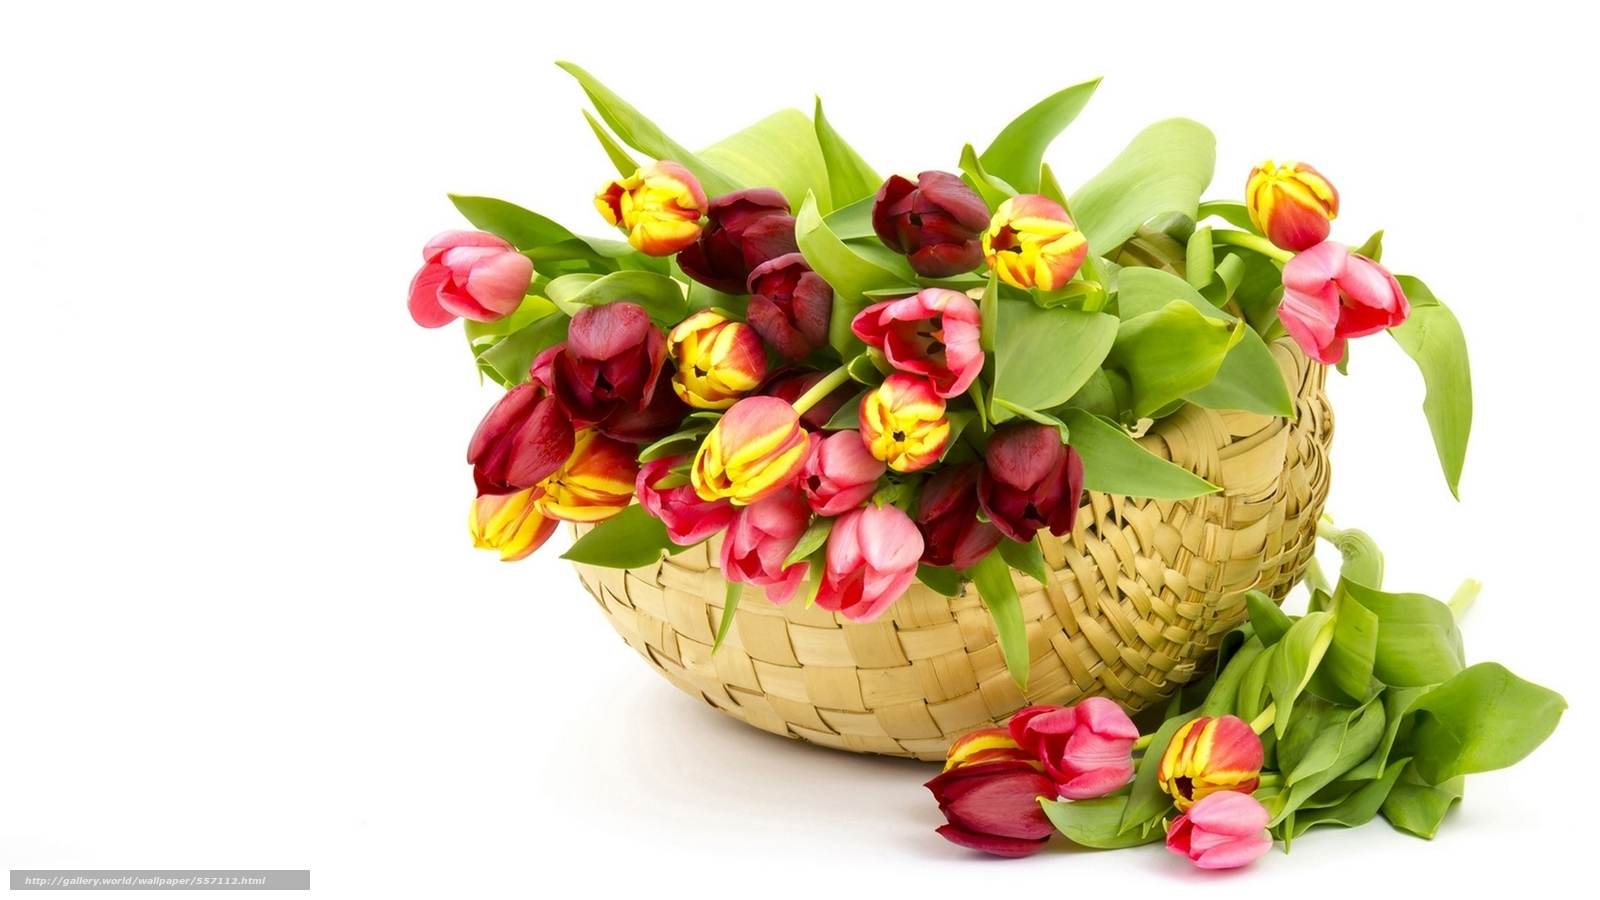 Download wallpaper nature flowers Flower basket free desktop wallpaper in